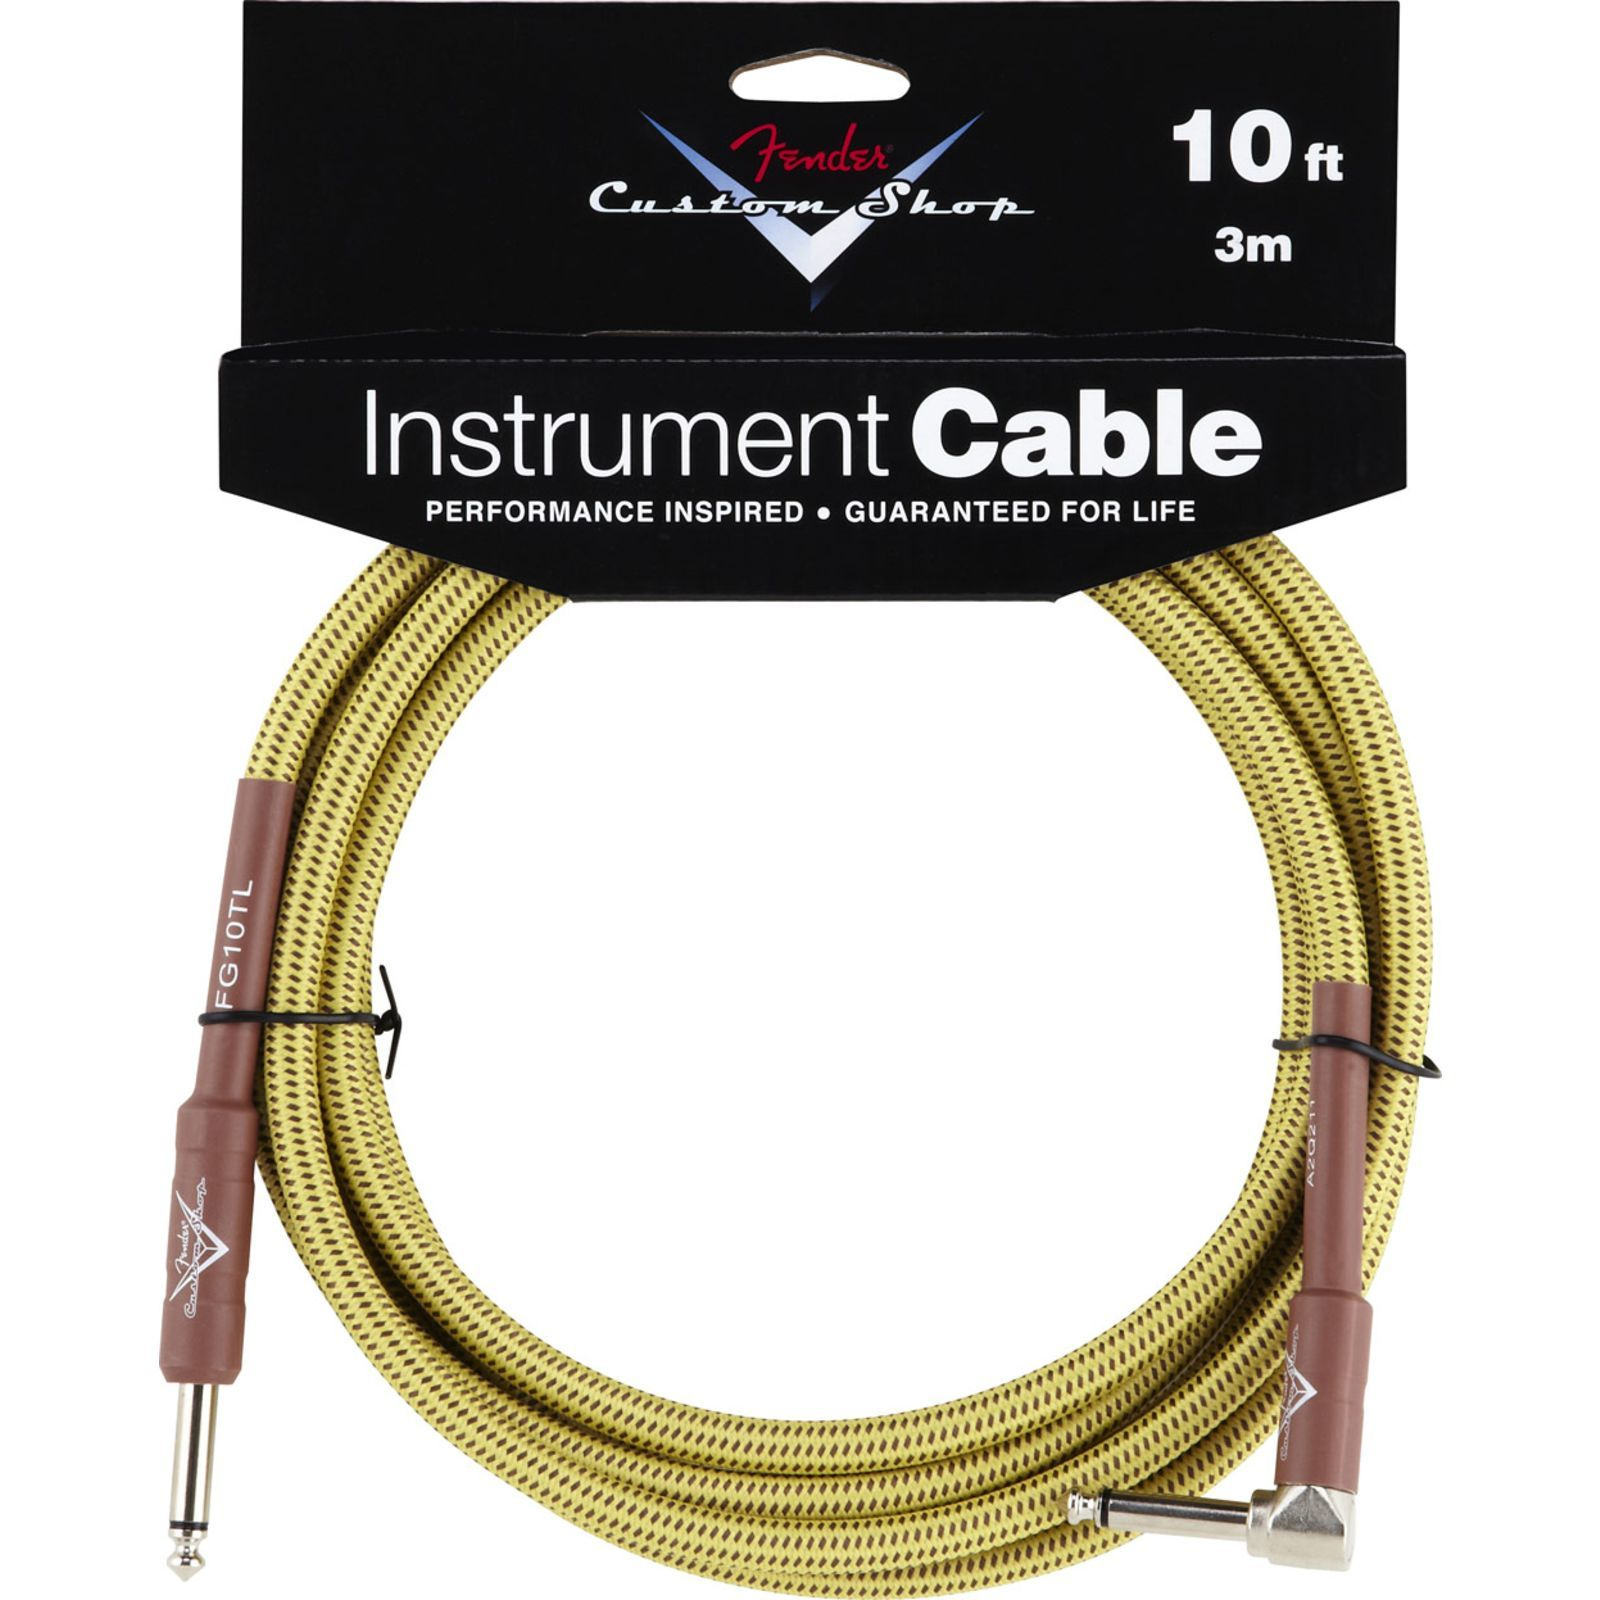 Fender Custom Shop Cable 3m TW Tweed, Kli/WKli Produktbild